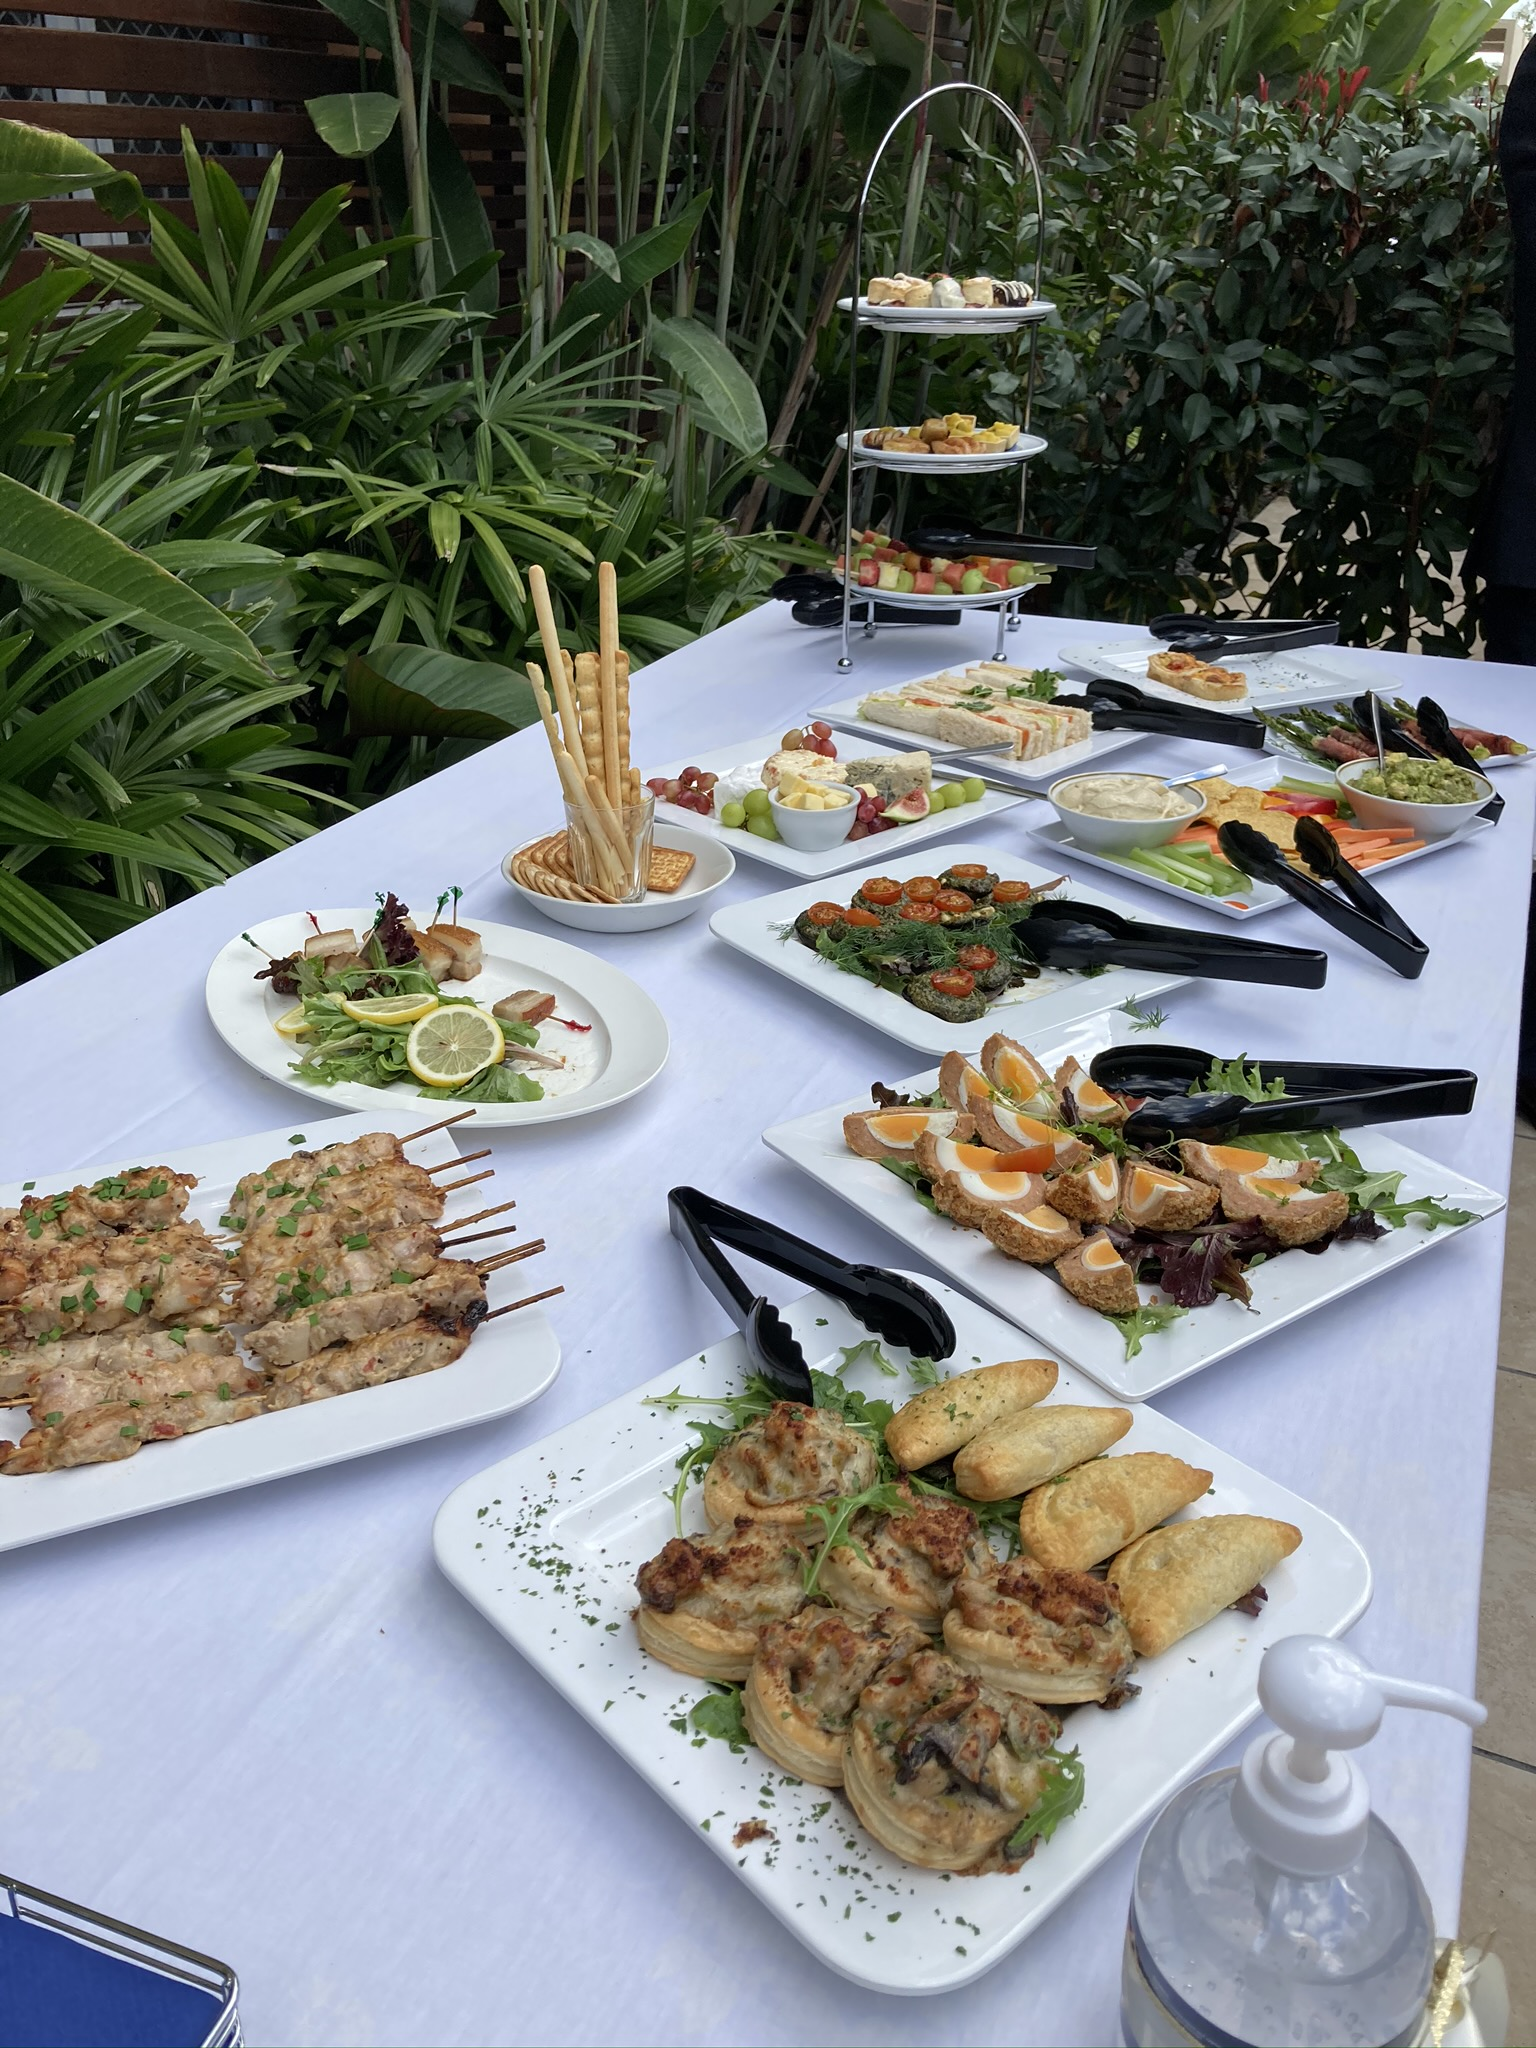 A selection of buffet food items